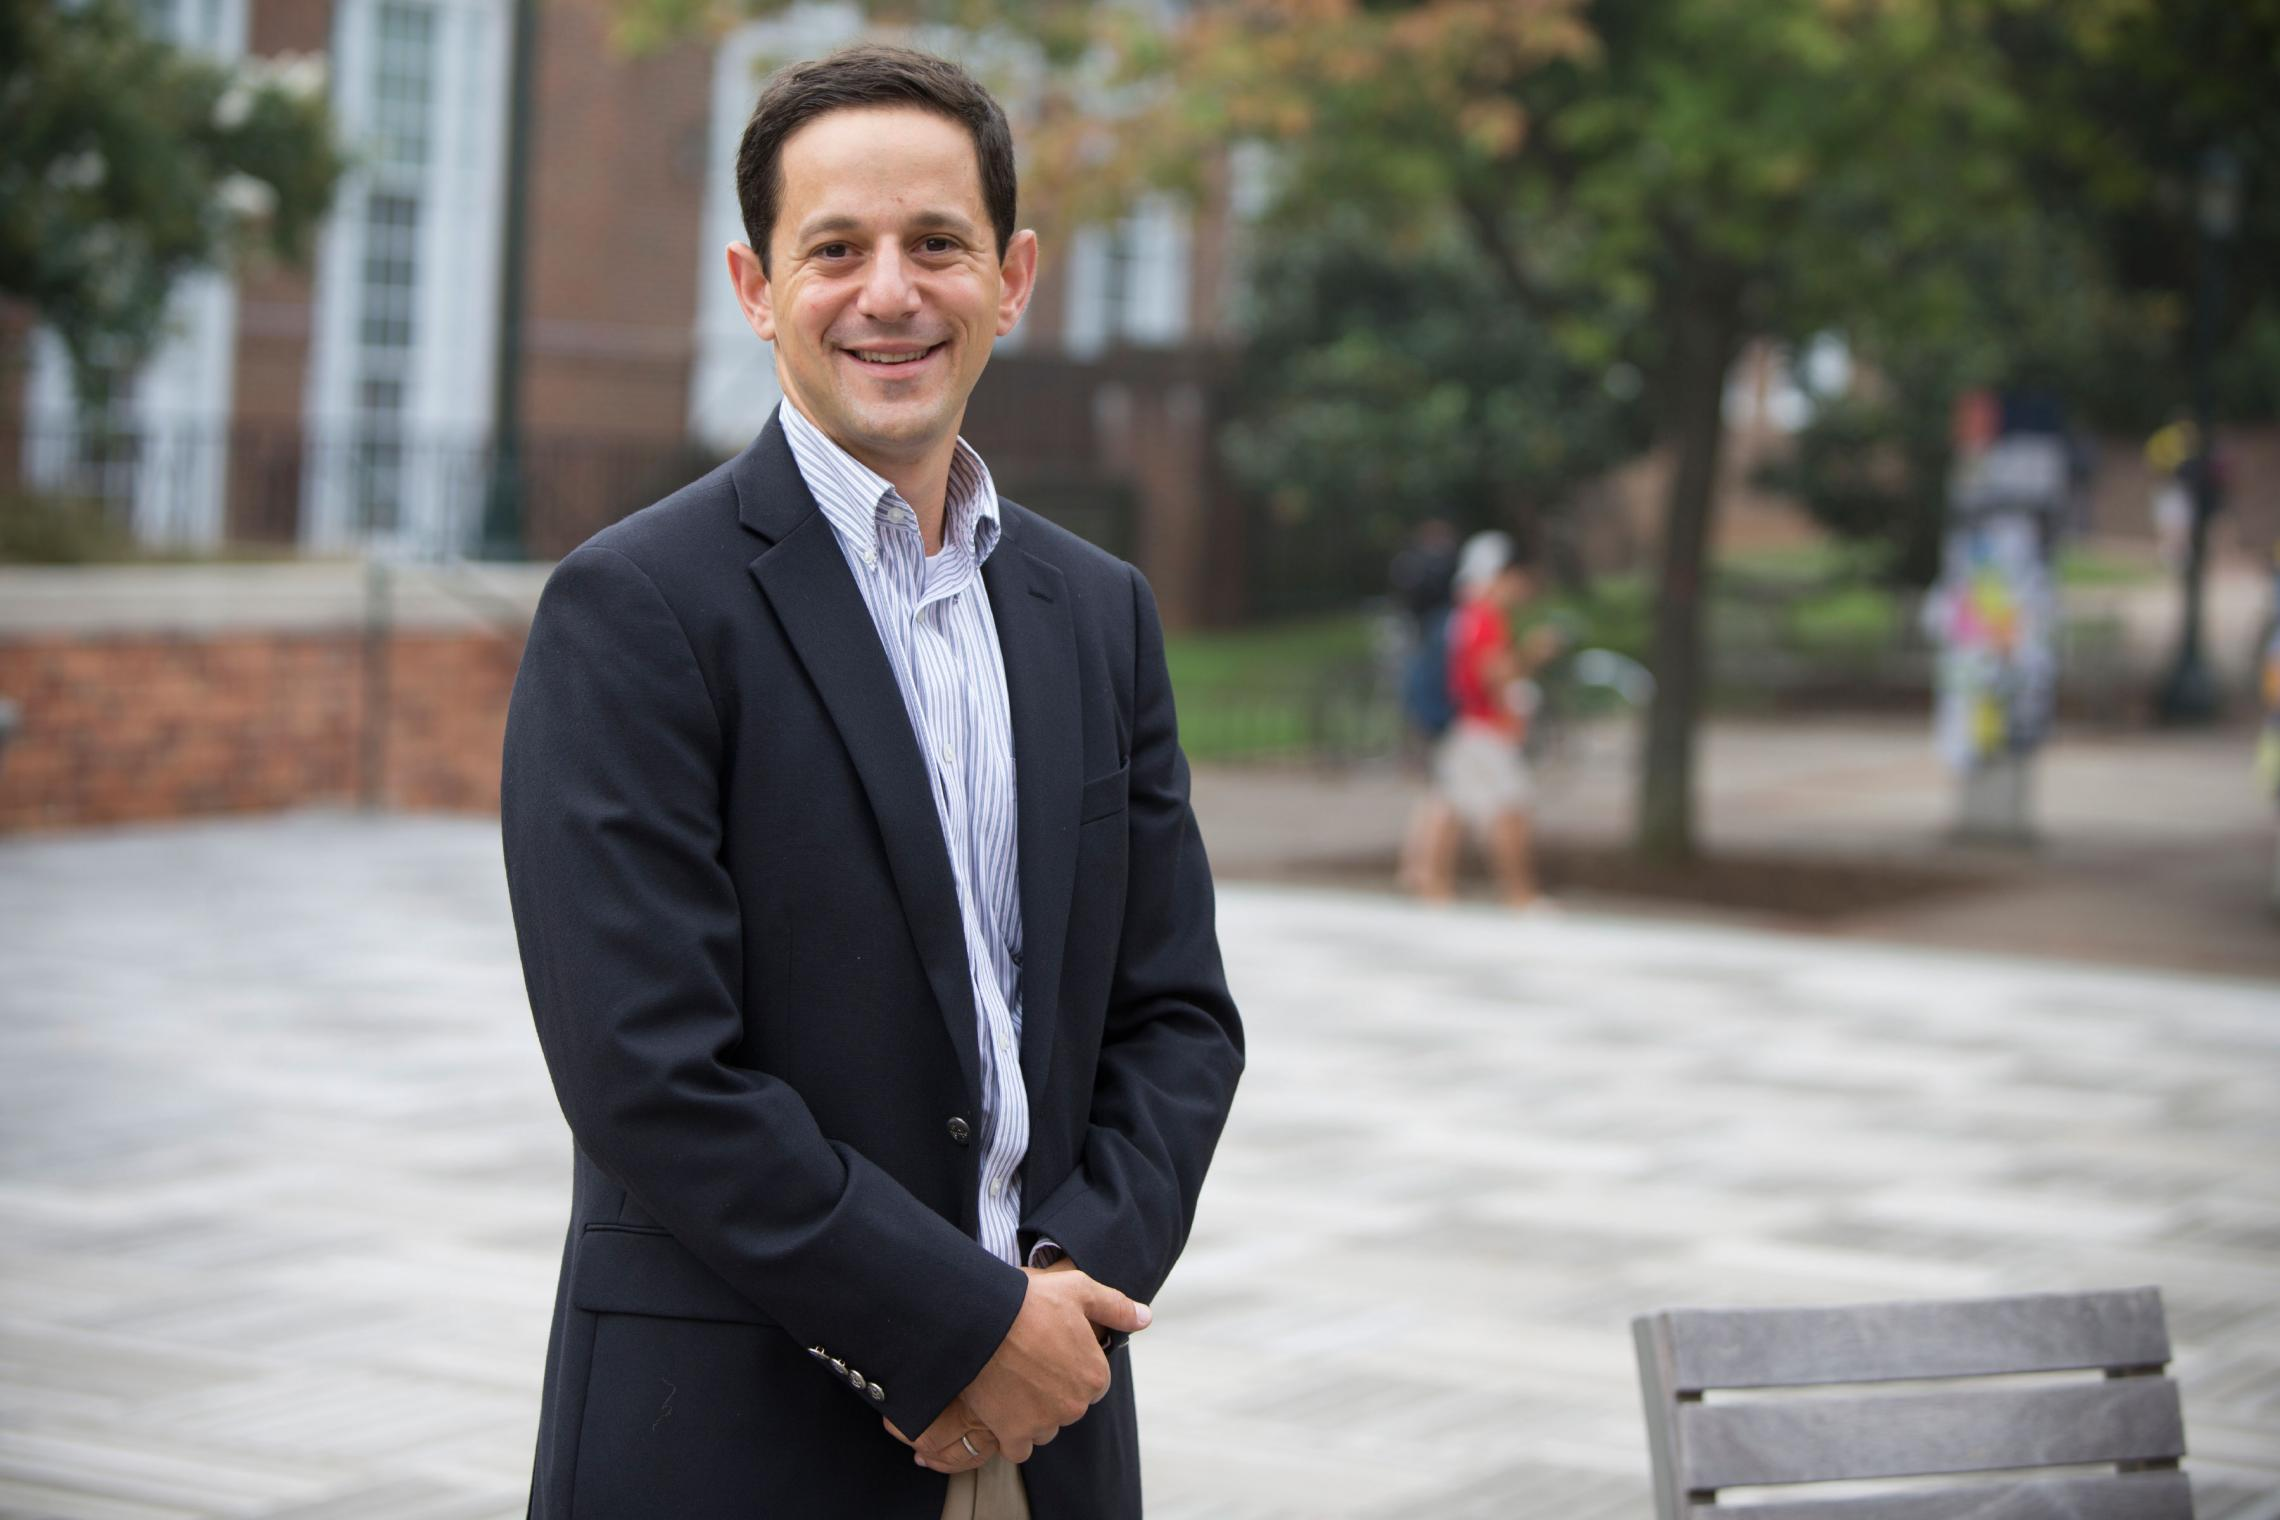 Benjamin Castleman, assistant professor of education and public policy in UVA's Curry School of Education, offers advice for low-cost methods to boost educational achievement in his new book.